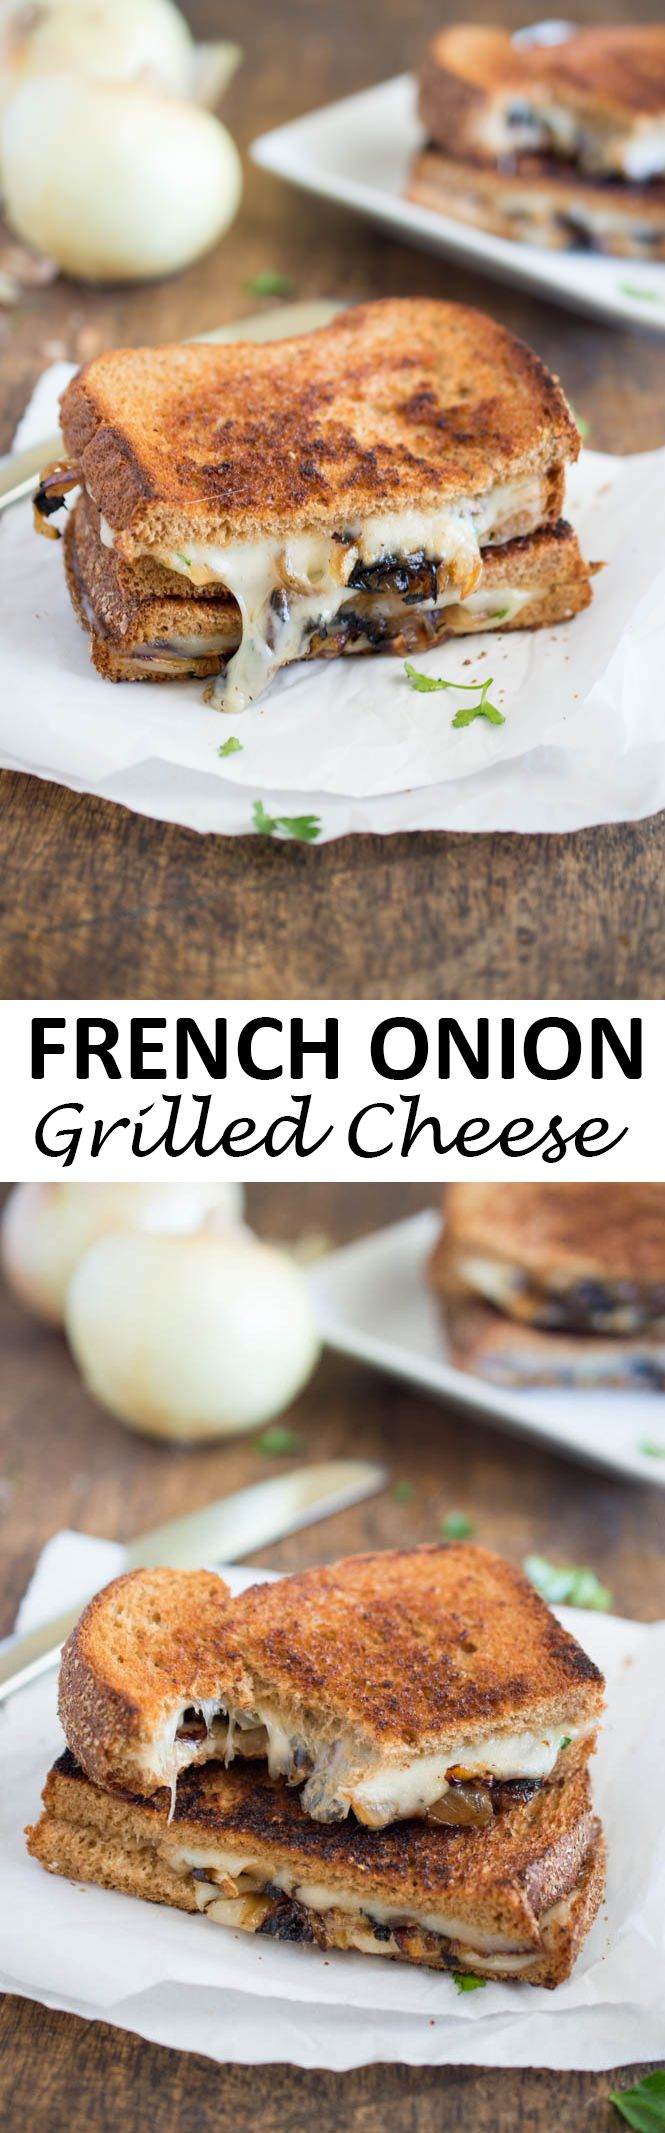 French Onion Grilled Cheese. All of the flavors of French Onion soup you love stuffed into a grilled cheese sandwich. Made with caramelized onions, Swiss cheese, and parsley.                                                                                                                                                                                 More